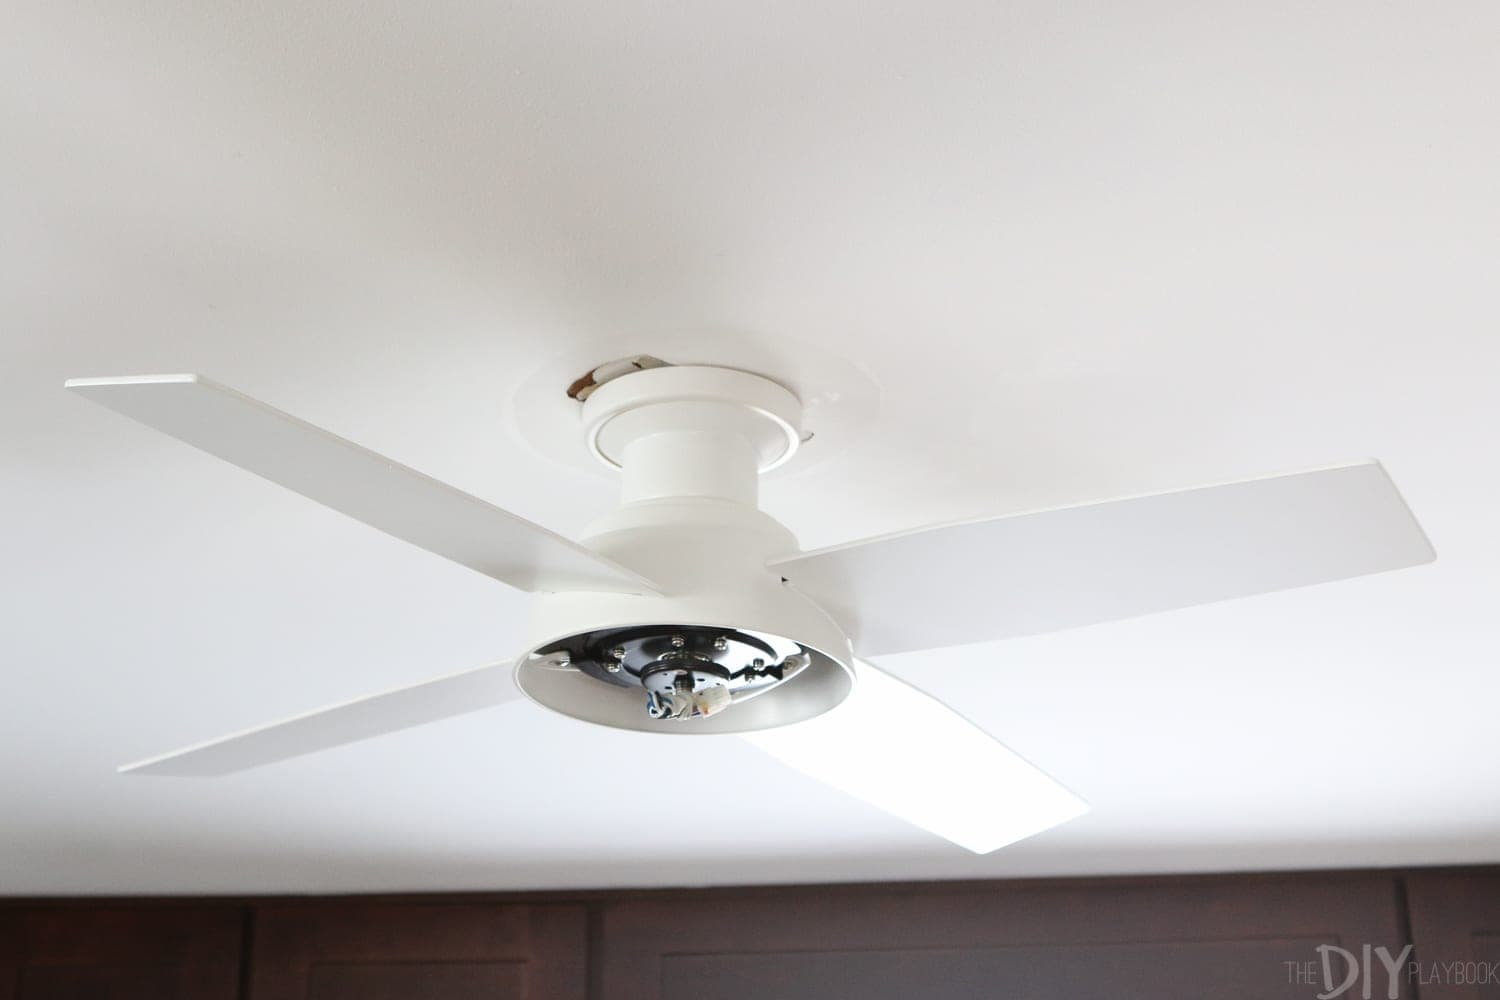 Finding A Perfect And Petite Fan For Bridgets Kitchen Ceiling Wiringceilingfan1jpg How To Install Zillow 18